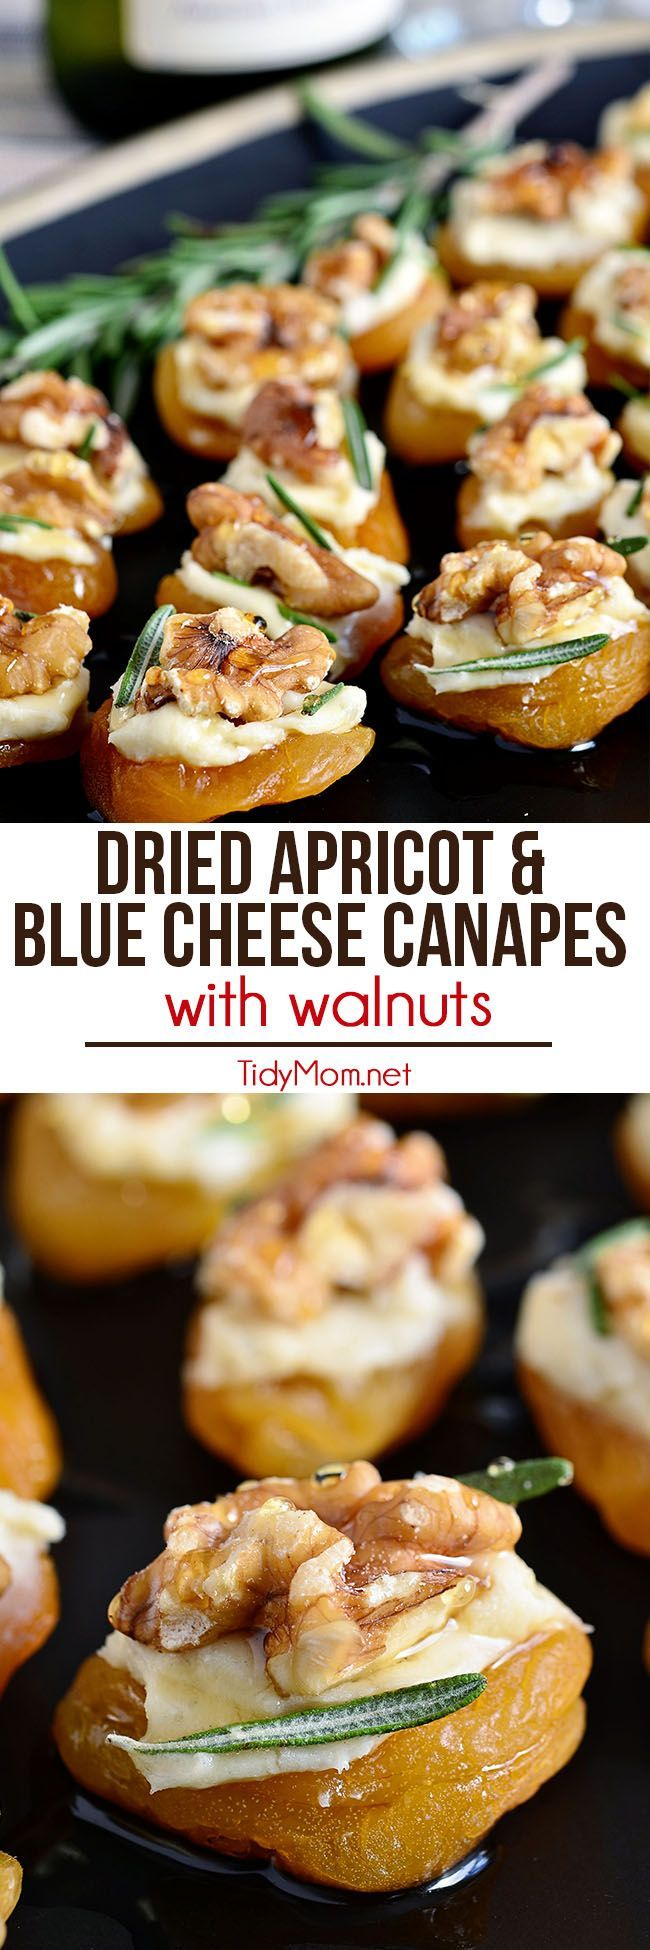 Making a delicious appetizer for a party doesn't have to be a struggle! Dried Apricot and Blue Cheese Canapes with Walnuts come together in no time. They are simple, yet elegant enough for any kind of party. Get the Recipe at TidyMom.net